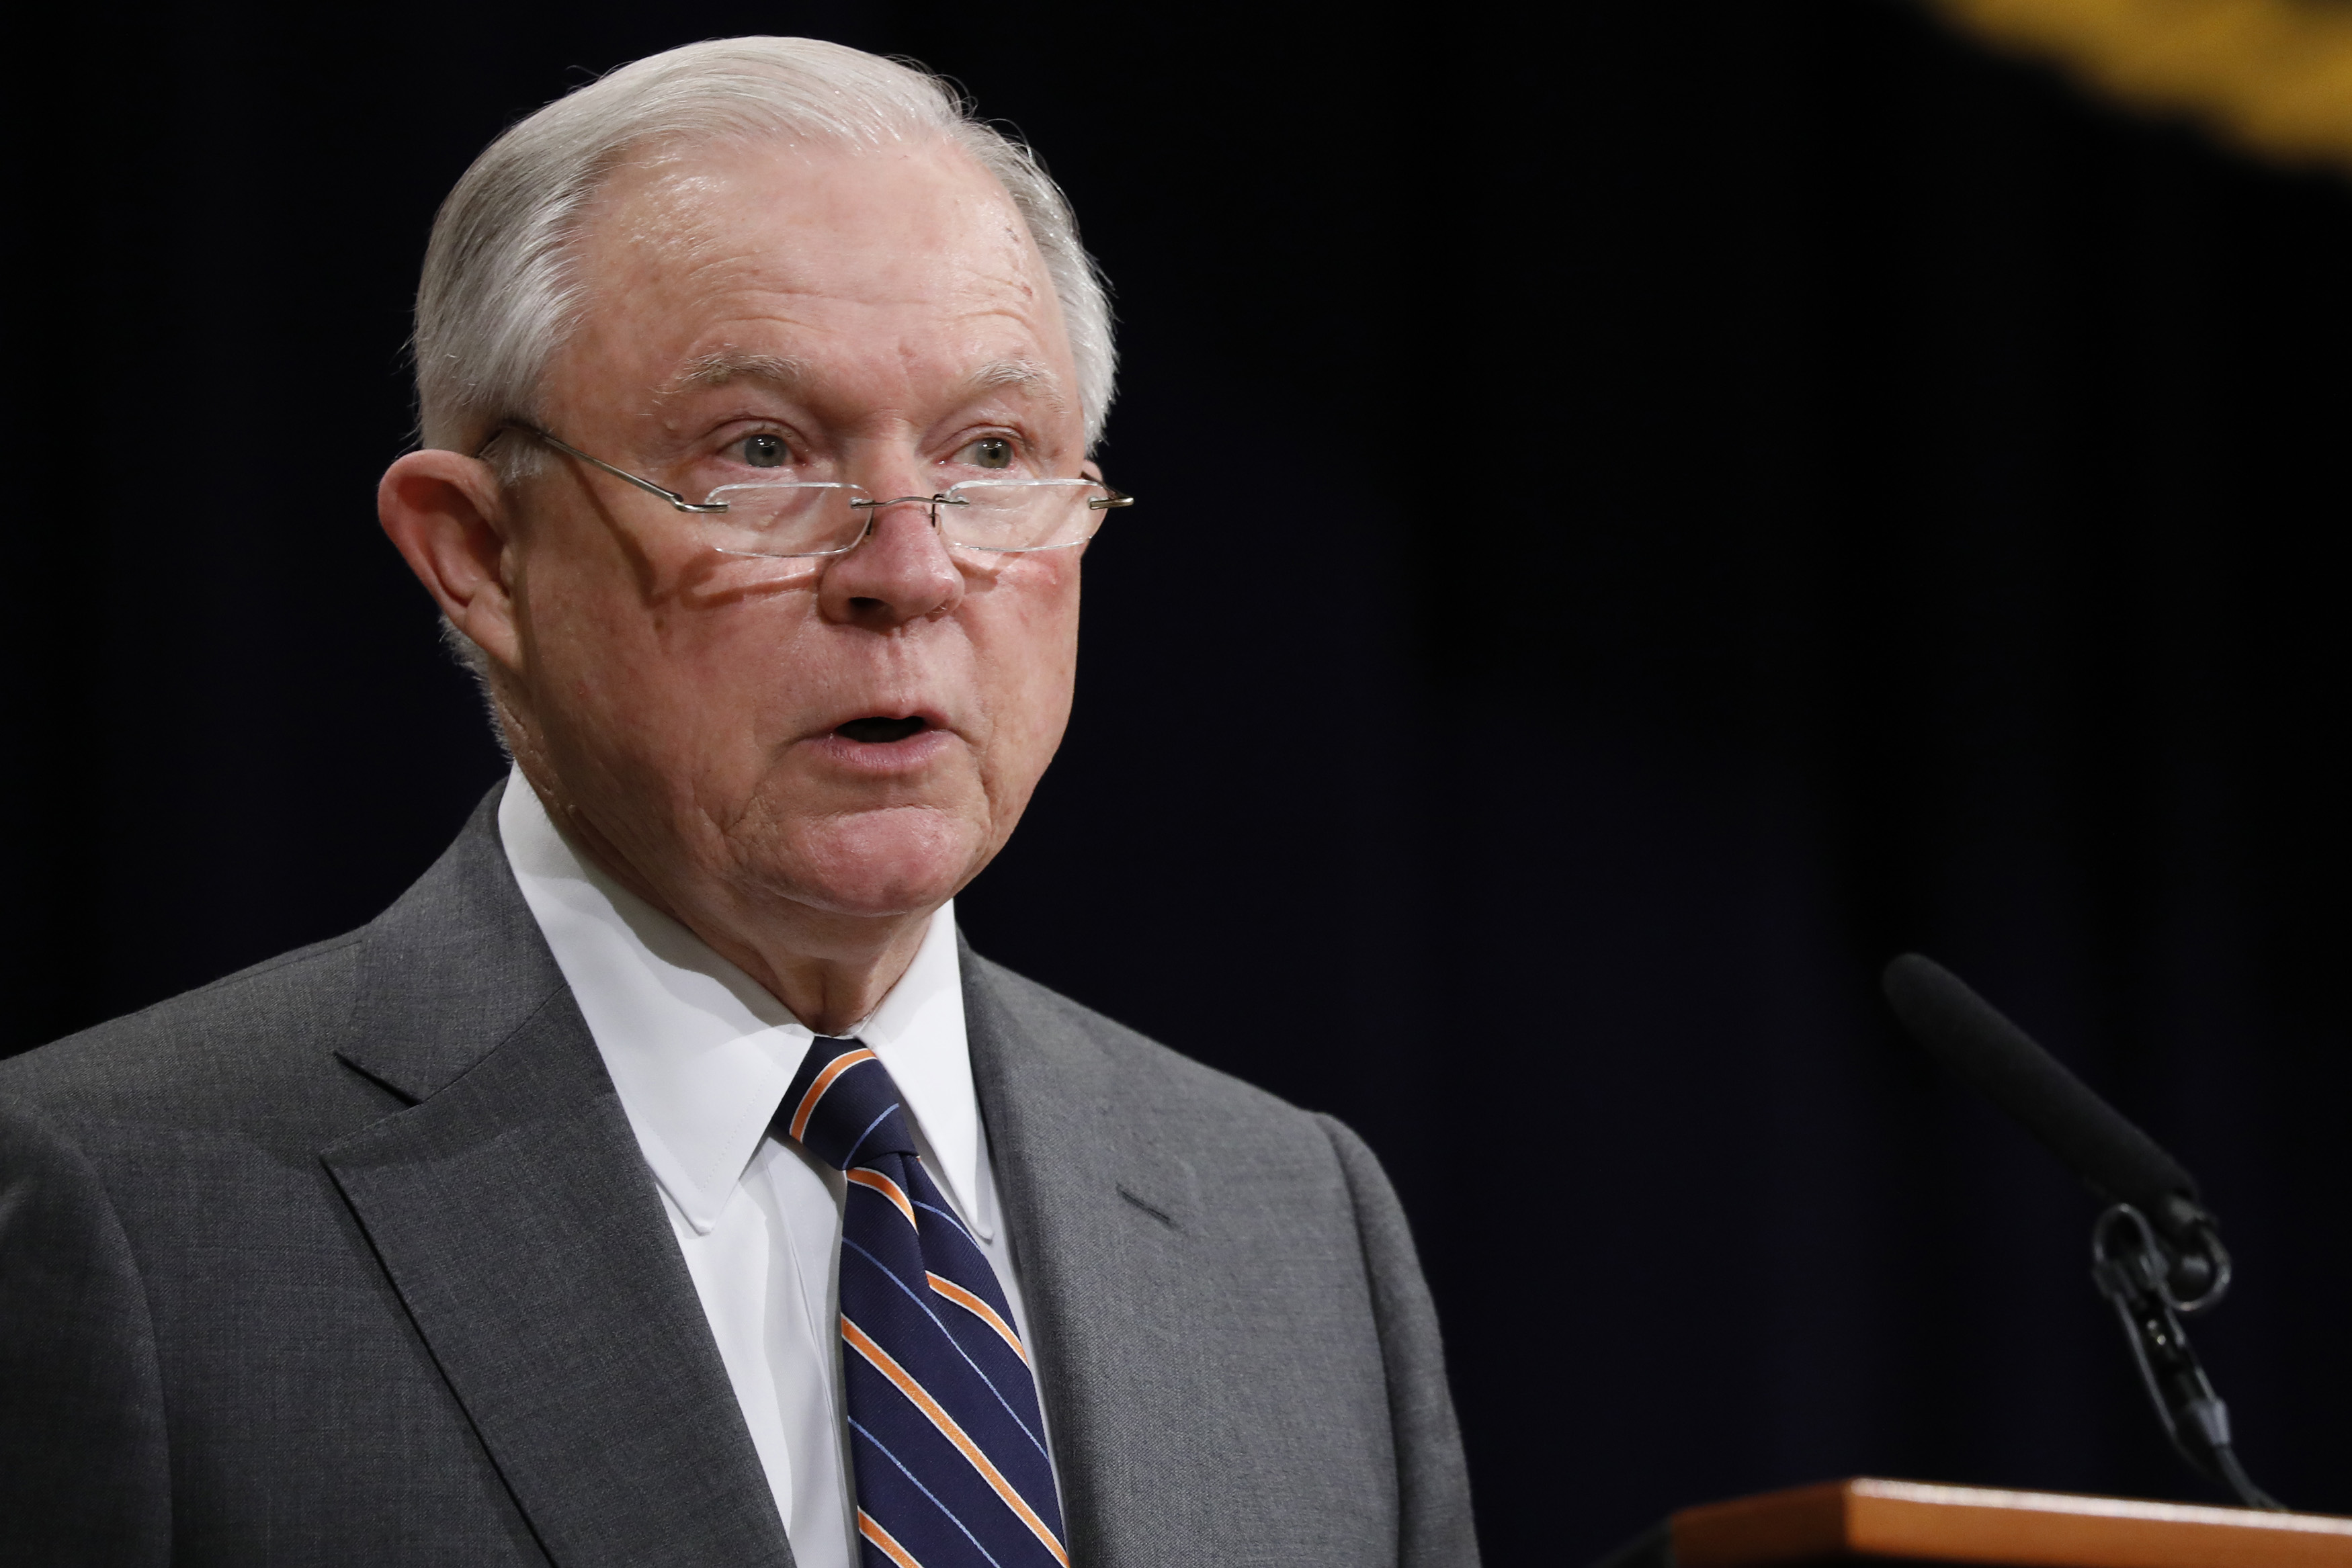 Attorney General Jeff Sessions speaks at the Justice Department in Washington, D.C. on Sept. 17, 2018.